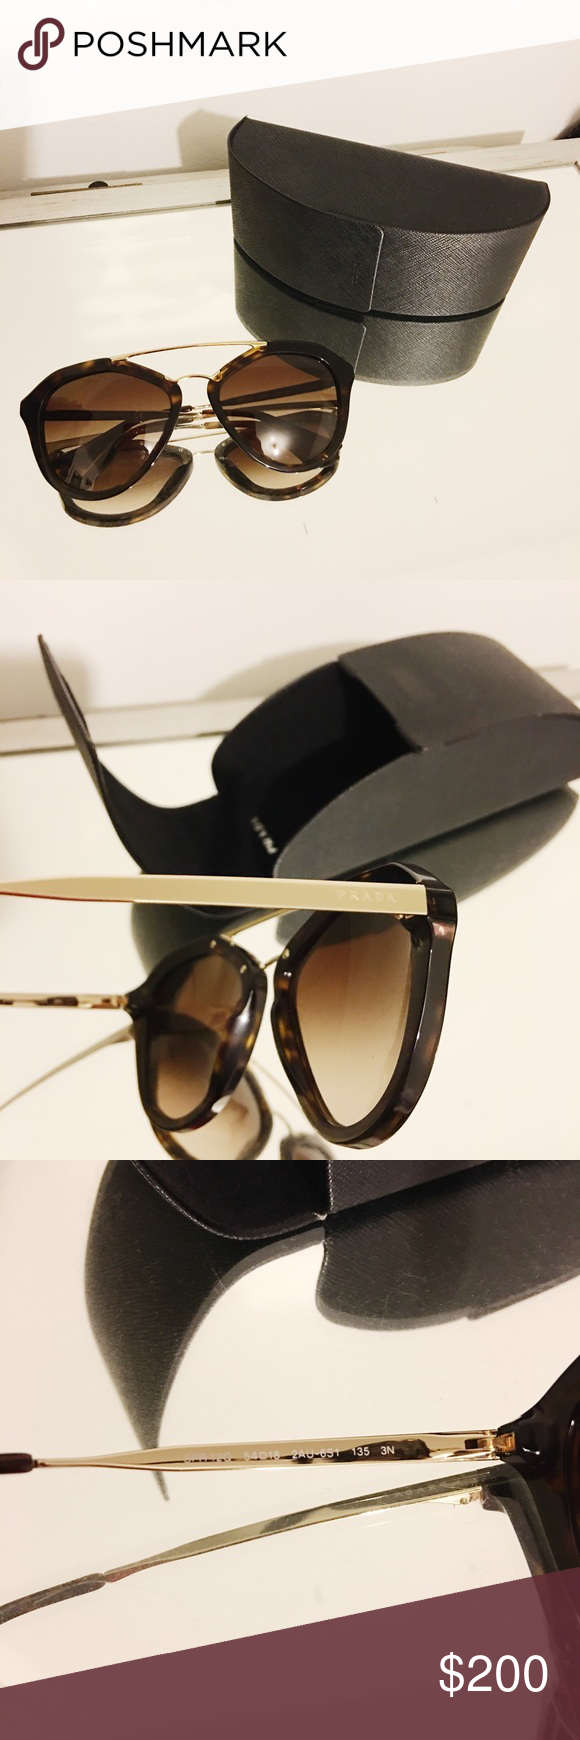 Prada Sunglasses SPR12Q Tortoise Brown Worn twice! No scratches on lens or hardware. Comes with the case and cleaning cloth Prada Accessories Sunglasses